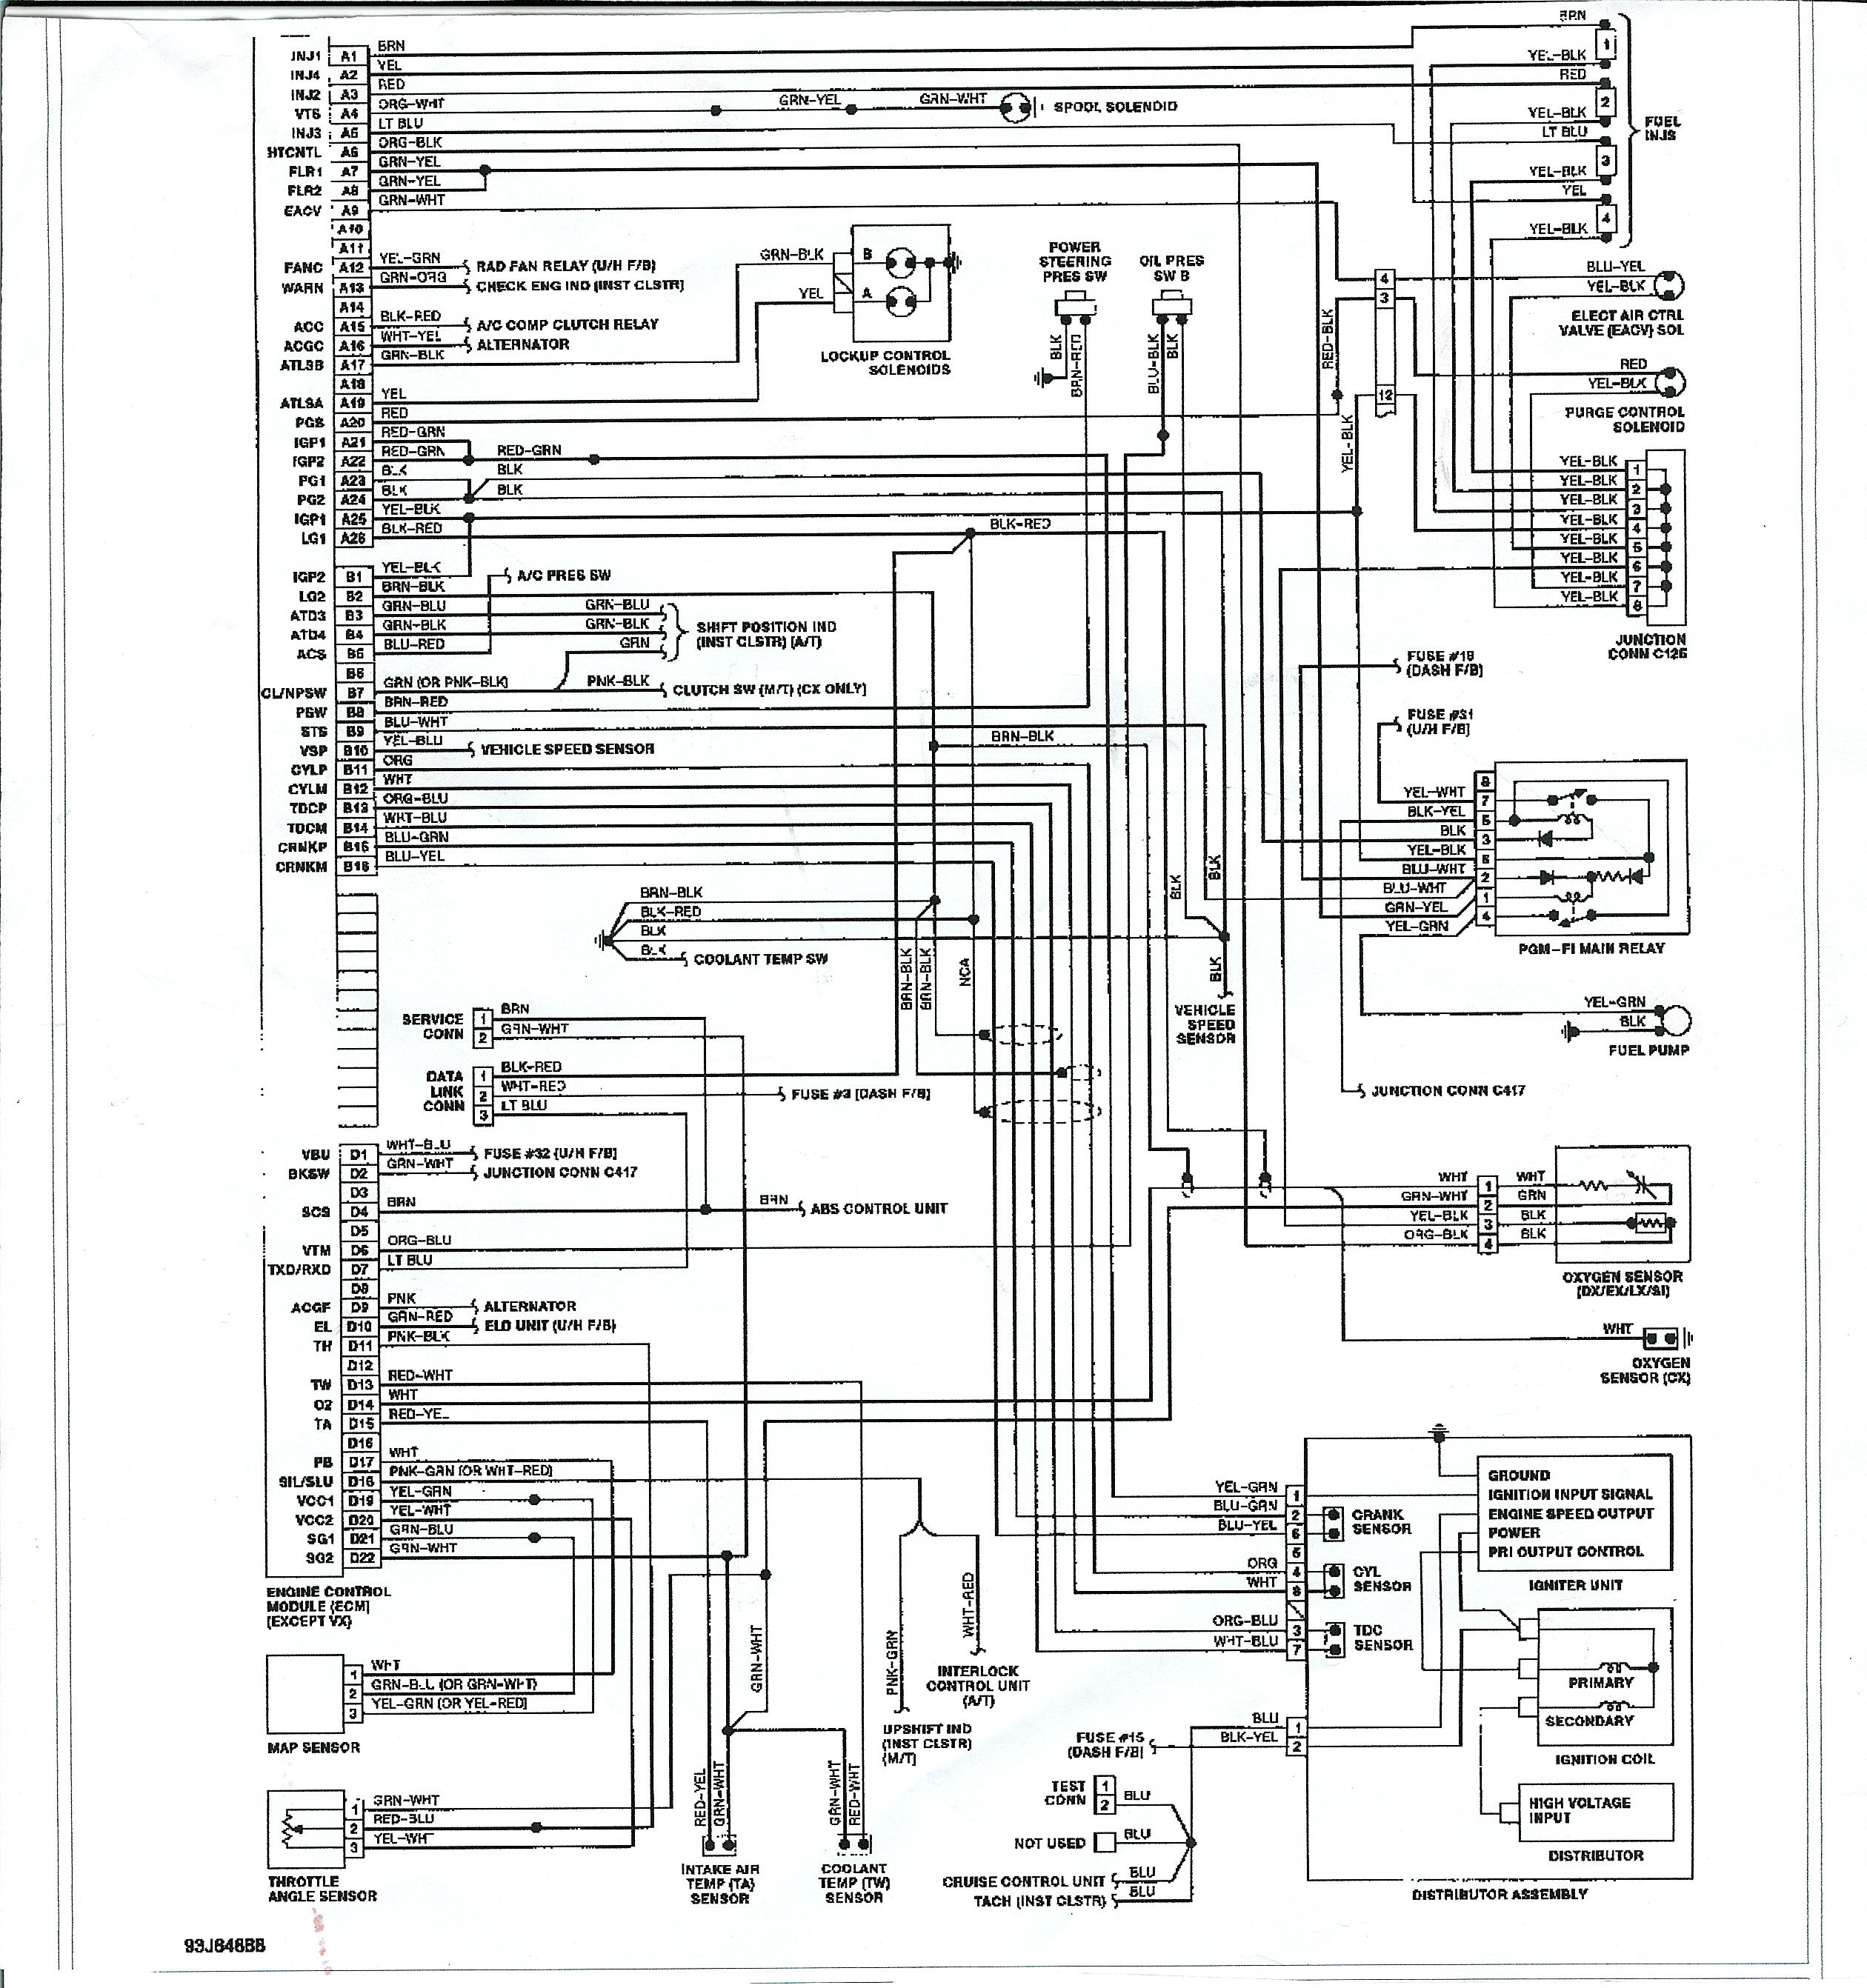 2001 chevy silverado window wiring schematic